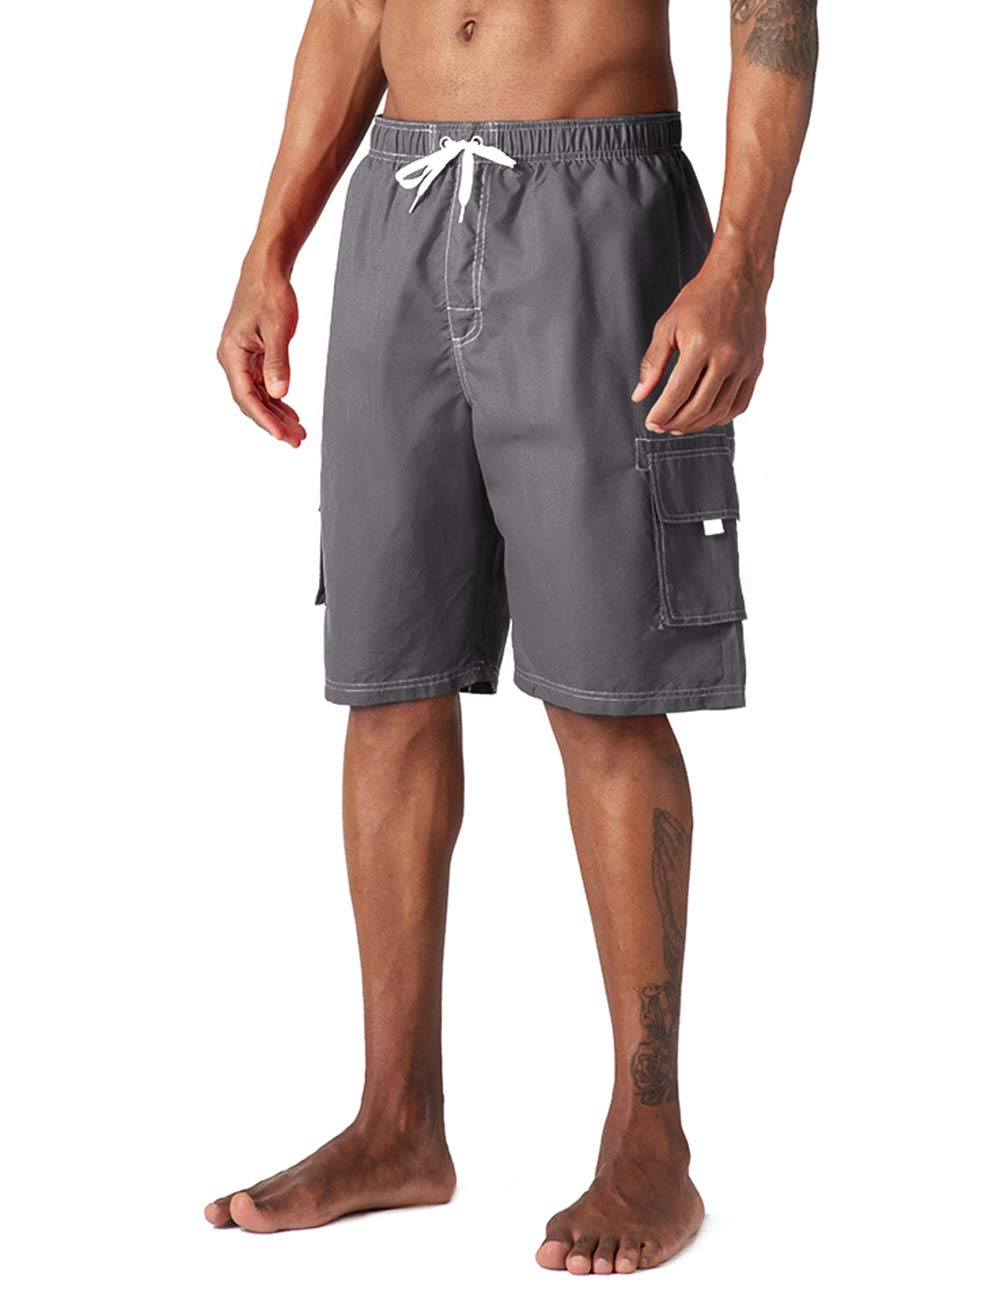 Kyopp Men's Swim Trunks Quick Dry Beach Broad Shorts with Pockets (A-Light Gray, L) by Kyopp